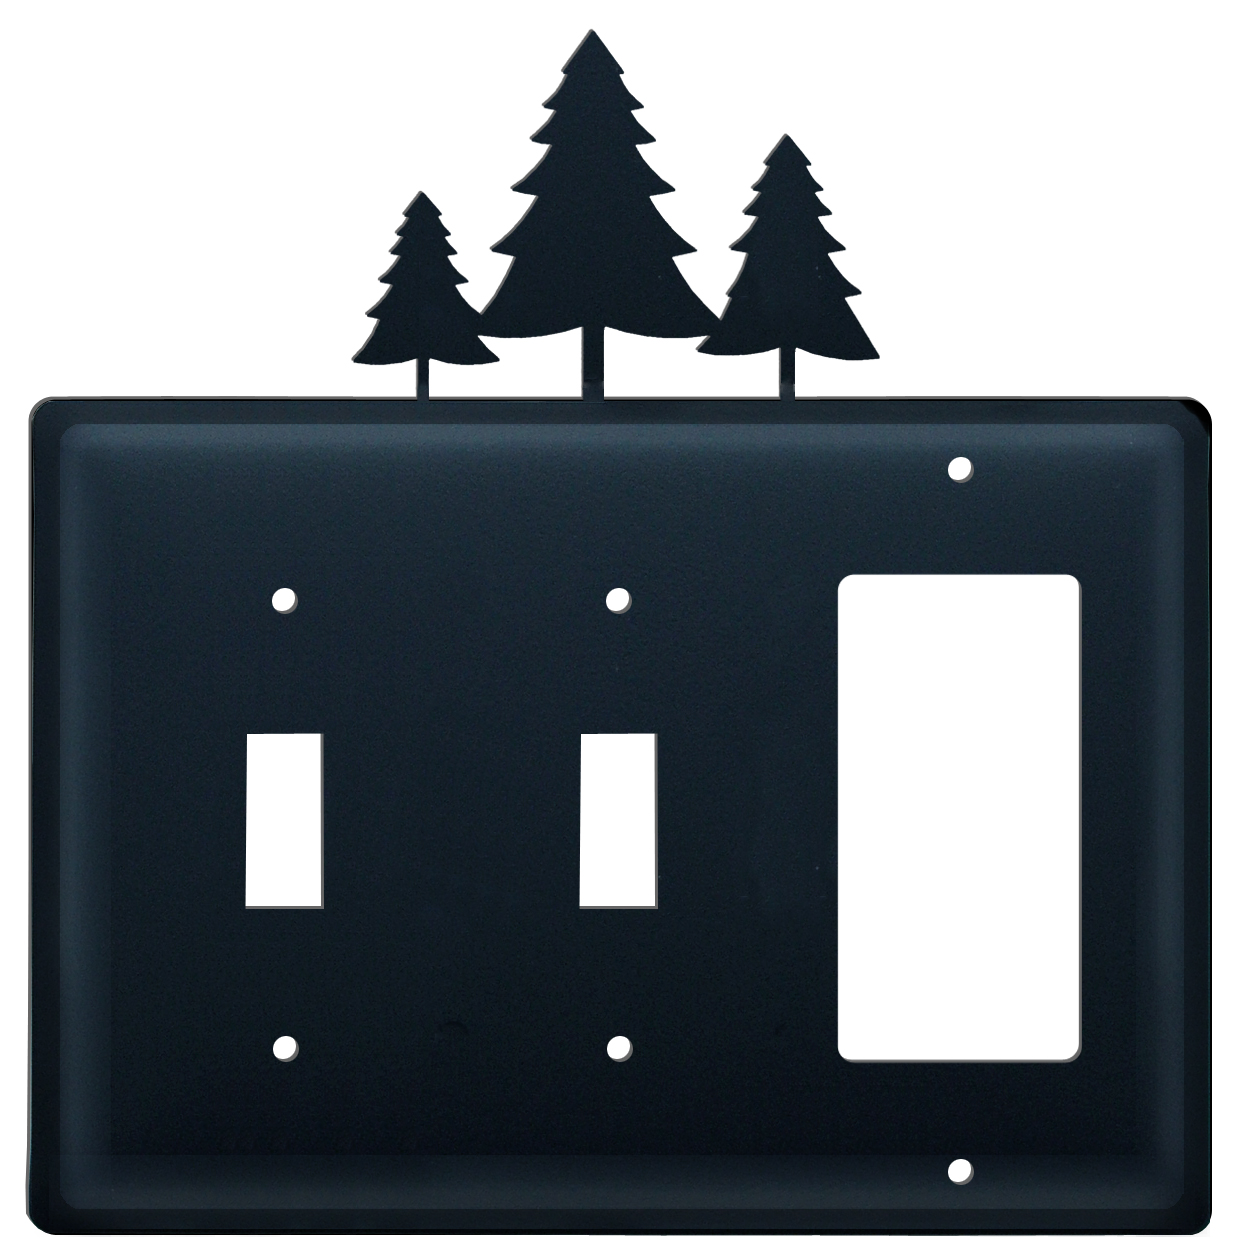 Pine Trees -  Switch Cover Triple